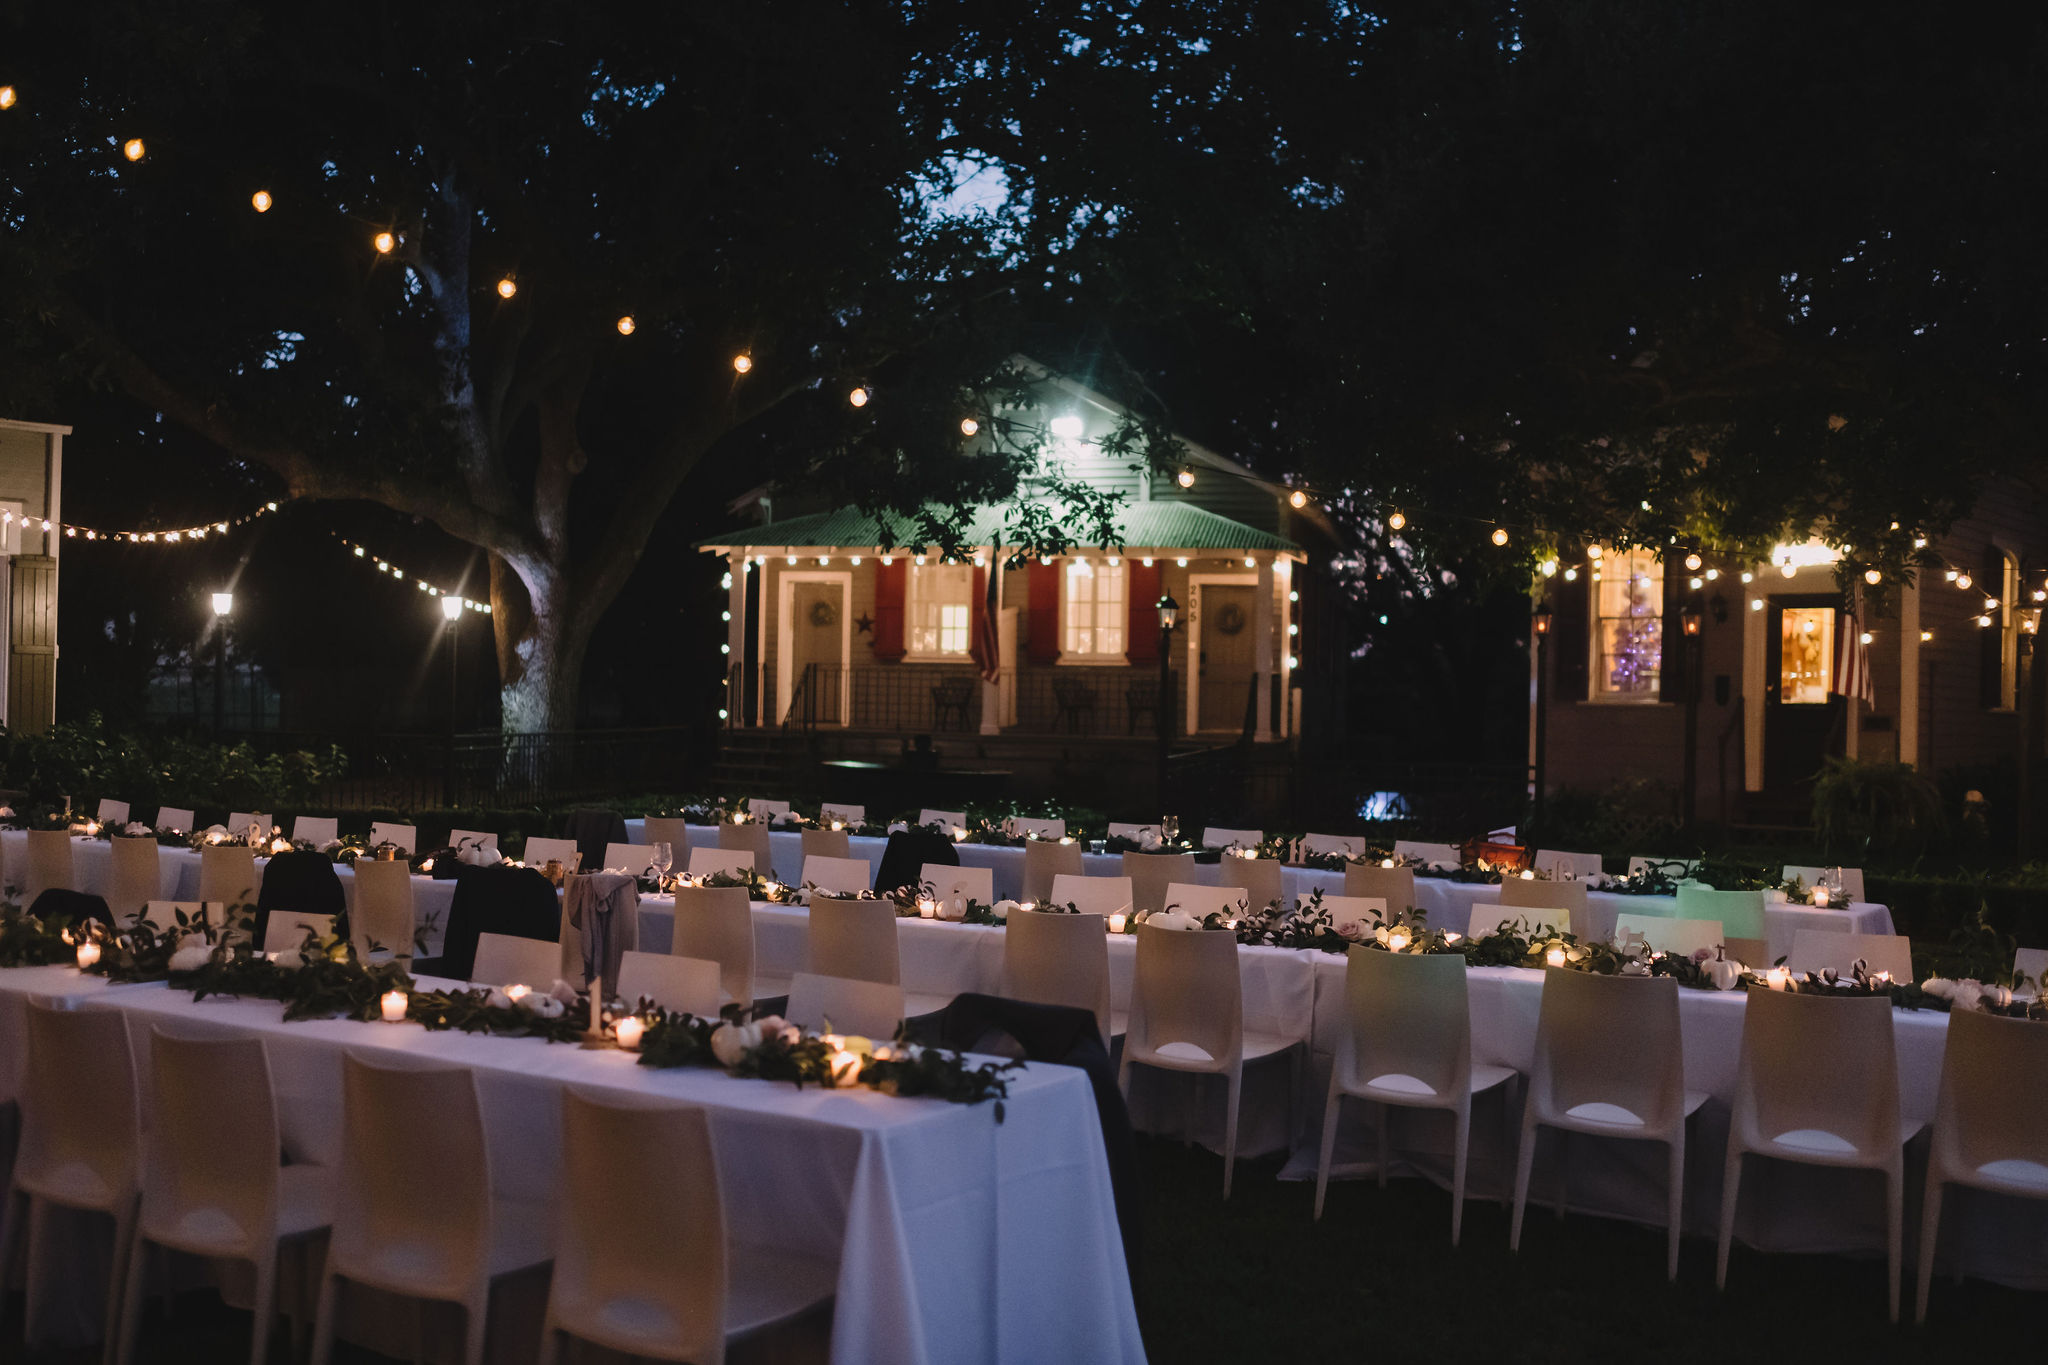 The reception took place outdoors on the open lawn at Compass Point.